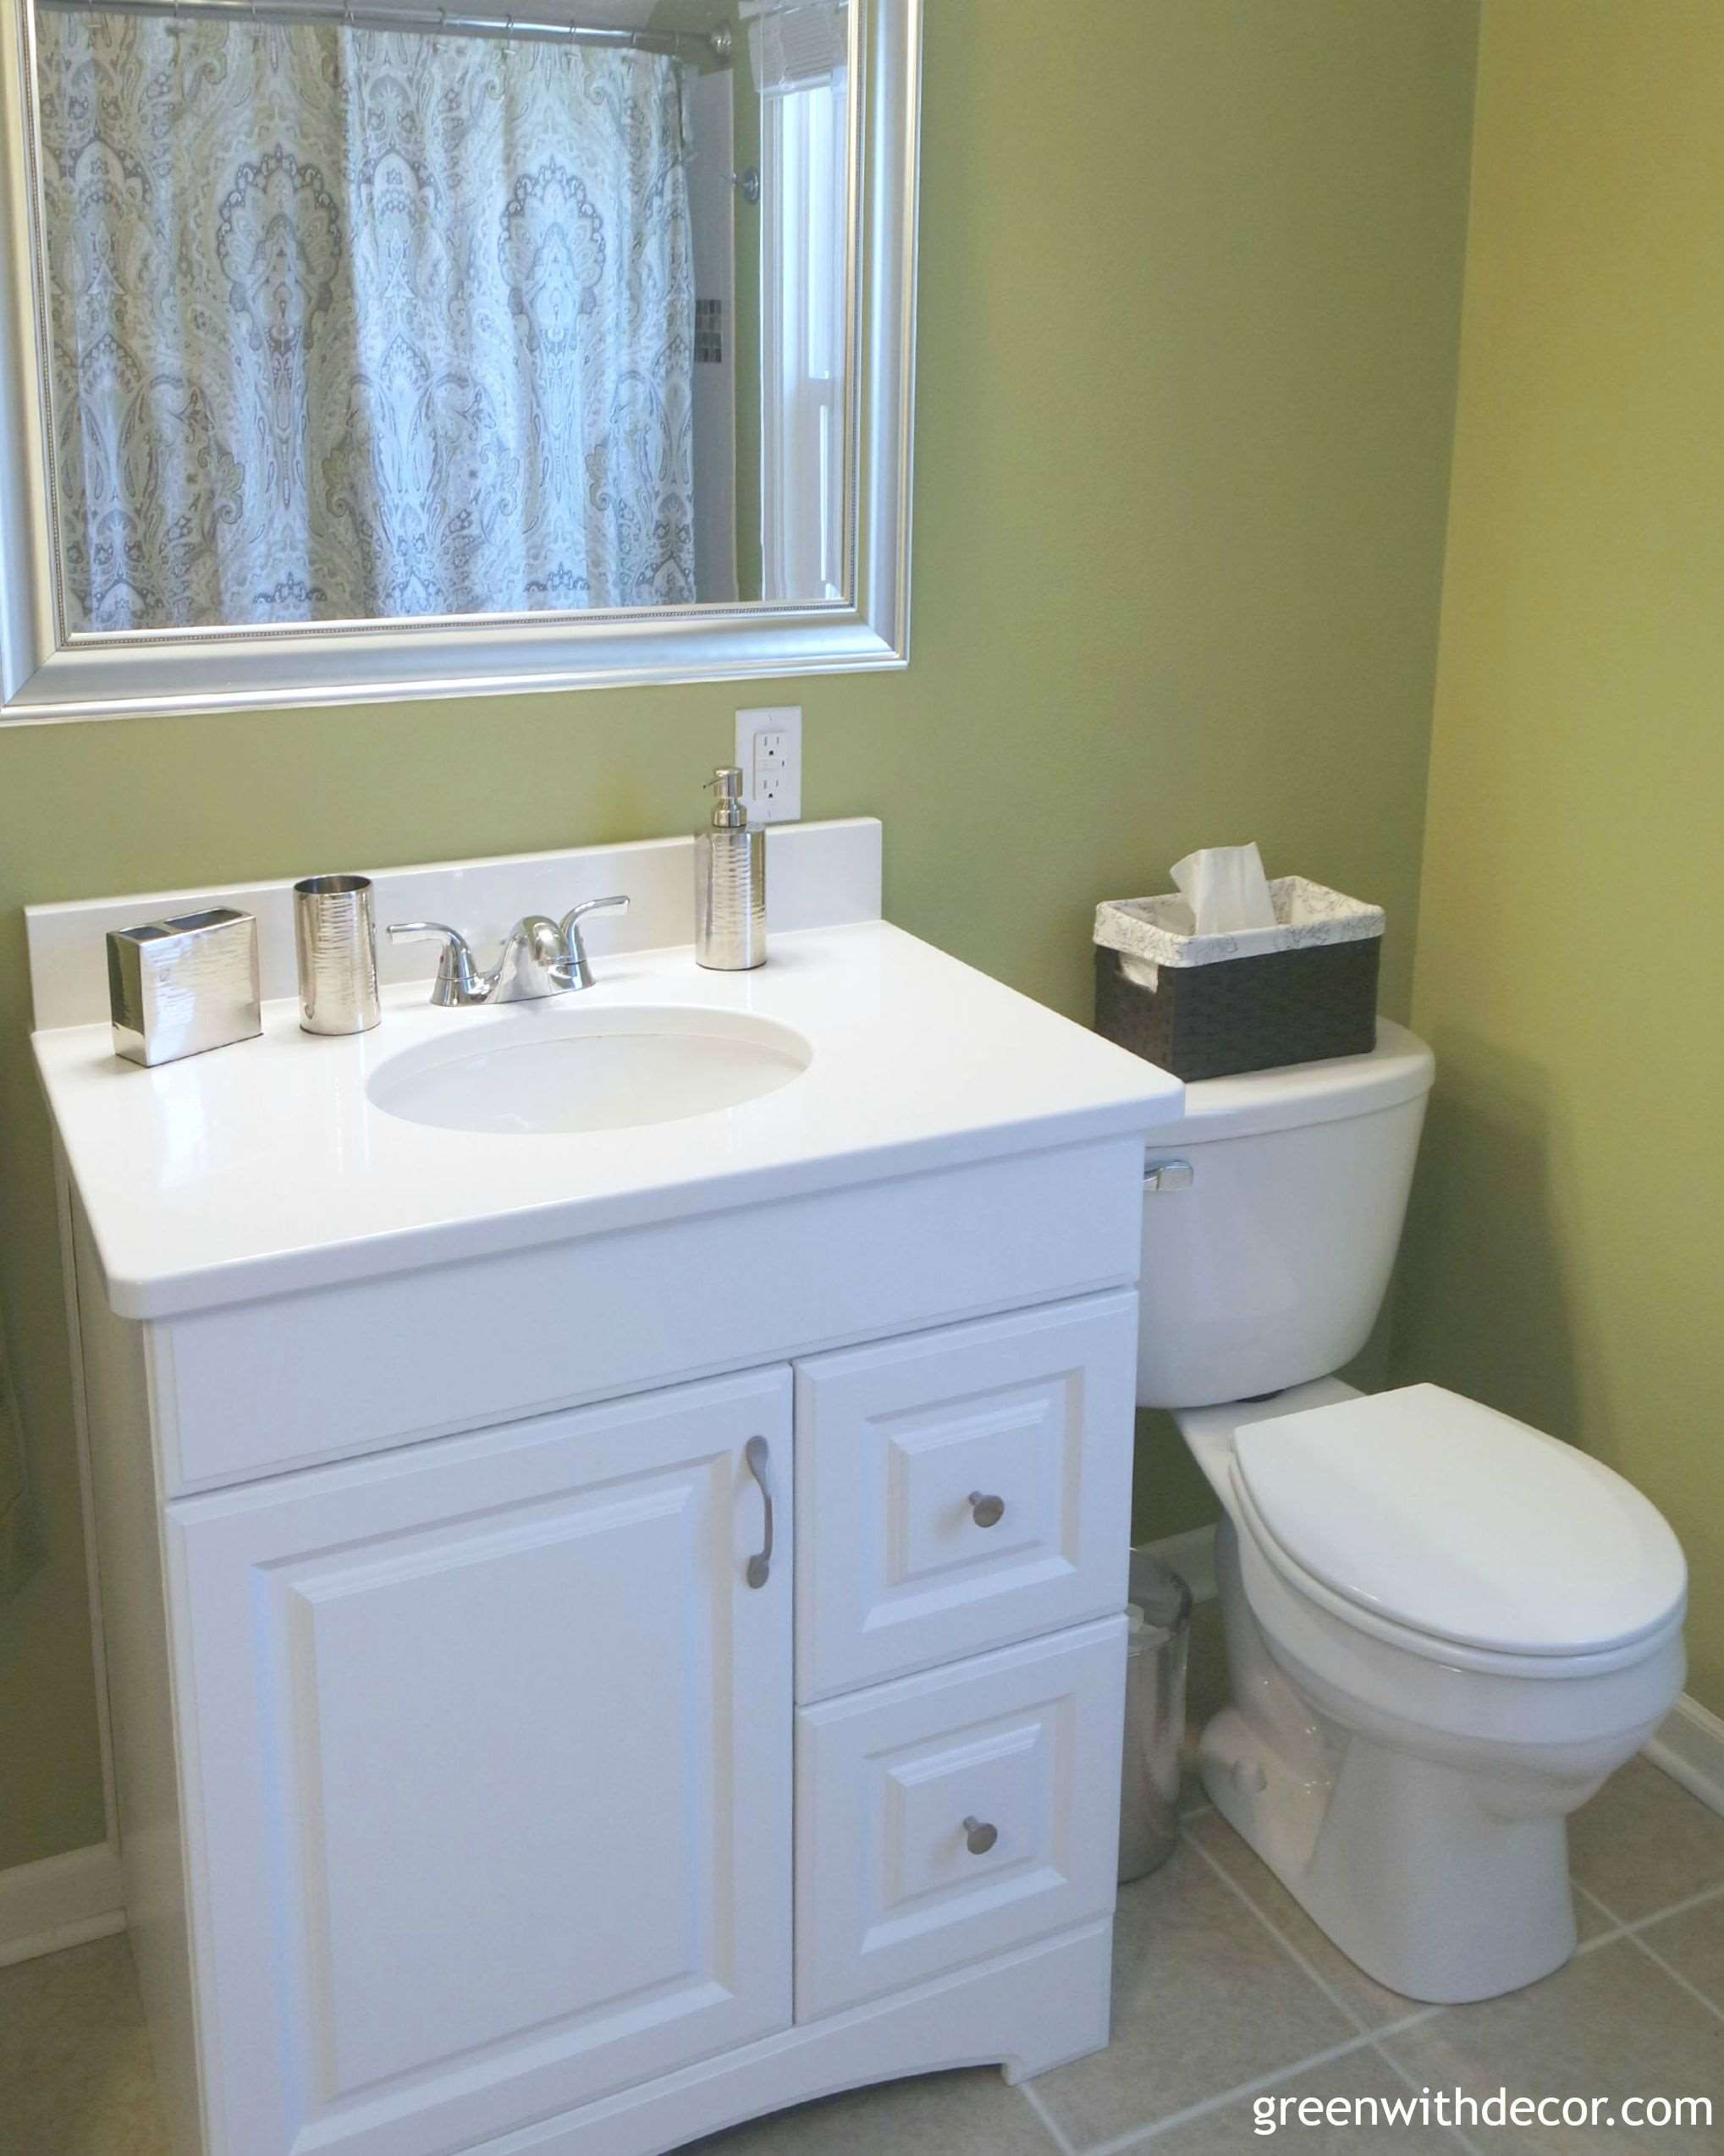 Things to consider for a bathroom layout green with decor for Bathroom accessories location